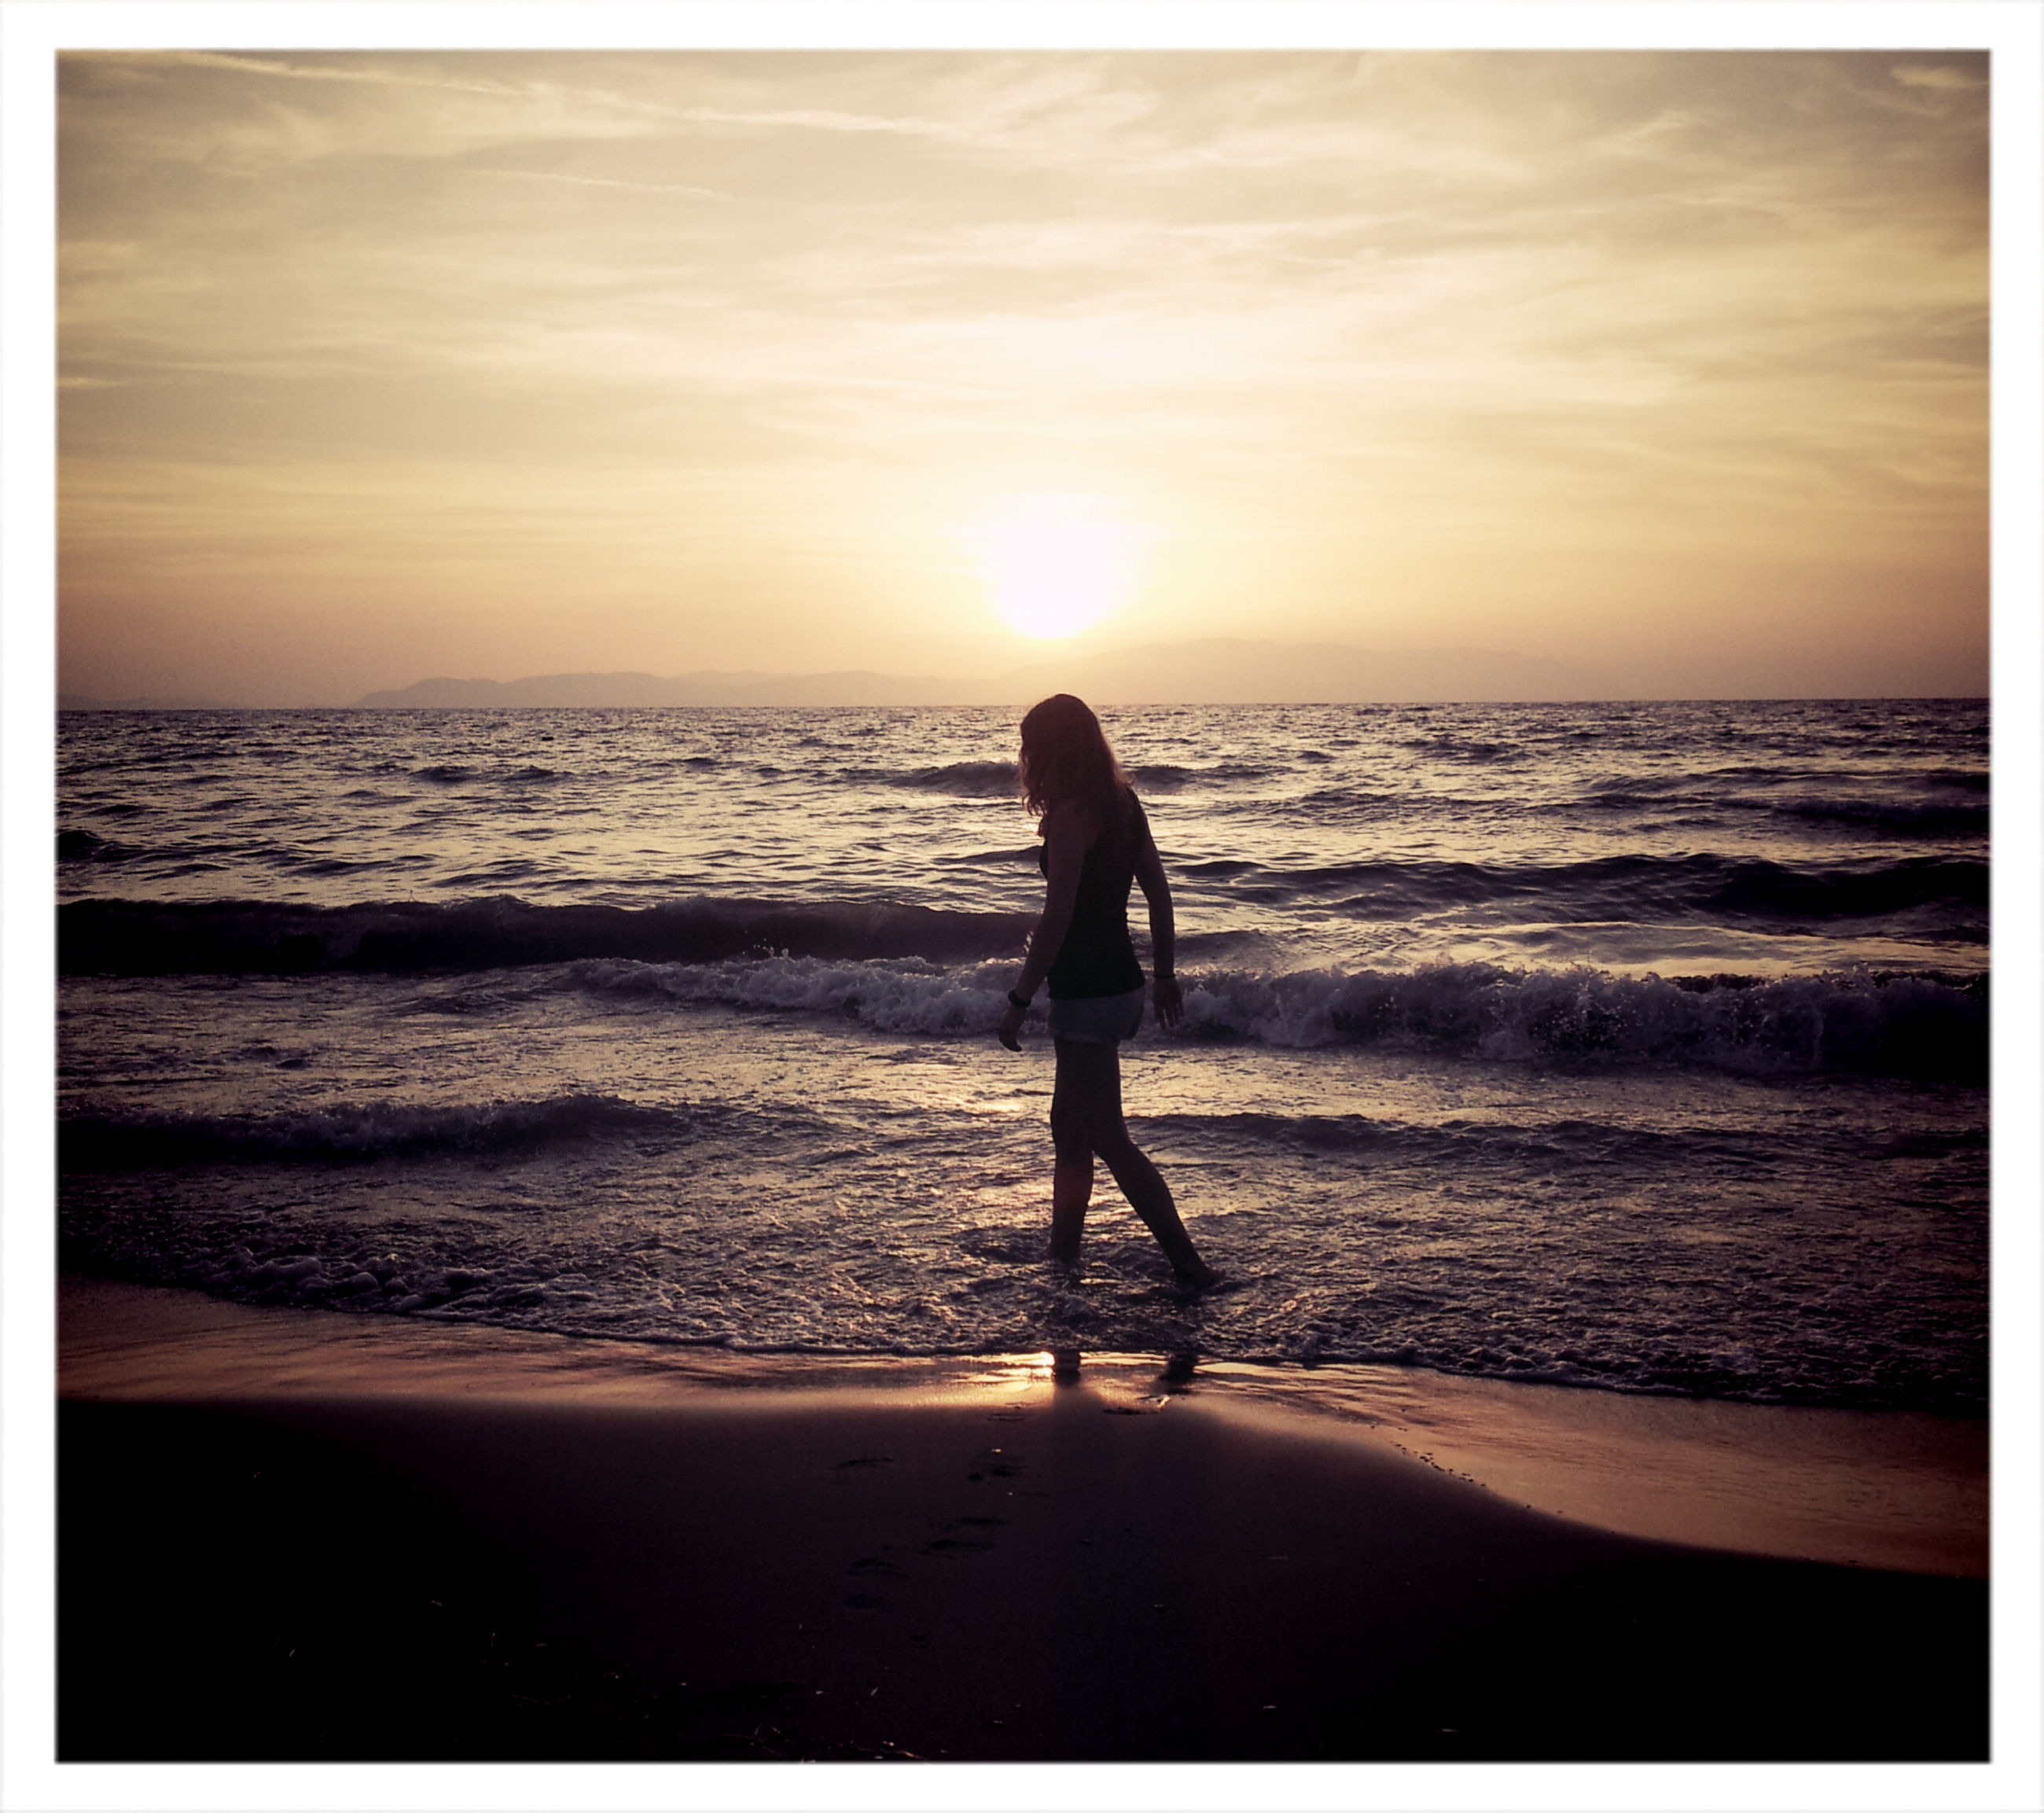 sea, horizon over water, sunset, beach, water, shore, sky, silhouette, leisure activity, scenics, orange color, full length, lifestyles, sun, beauty in nature, tranquil scene, wave, tranquility